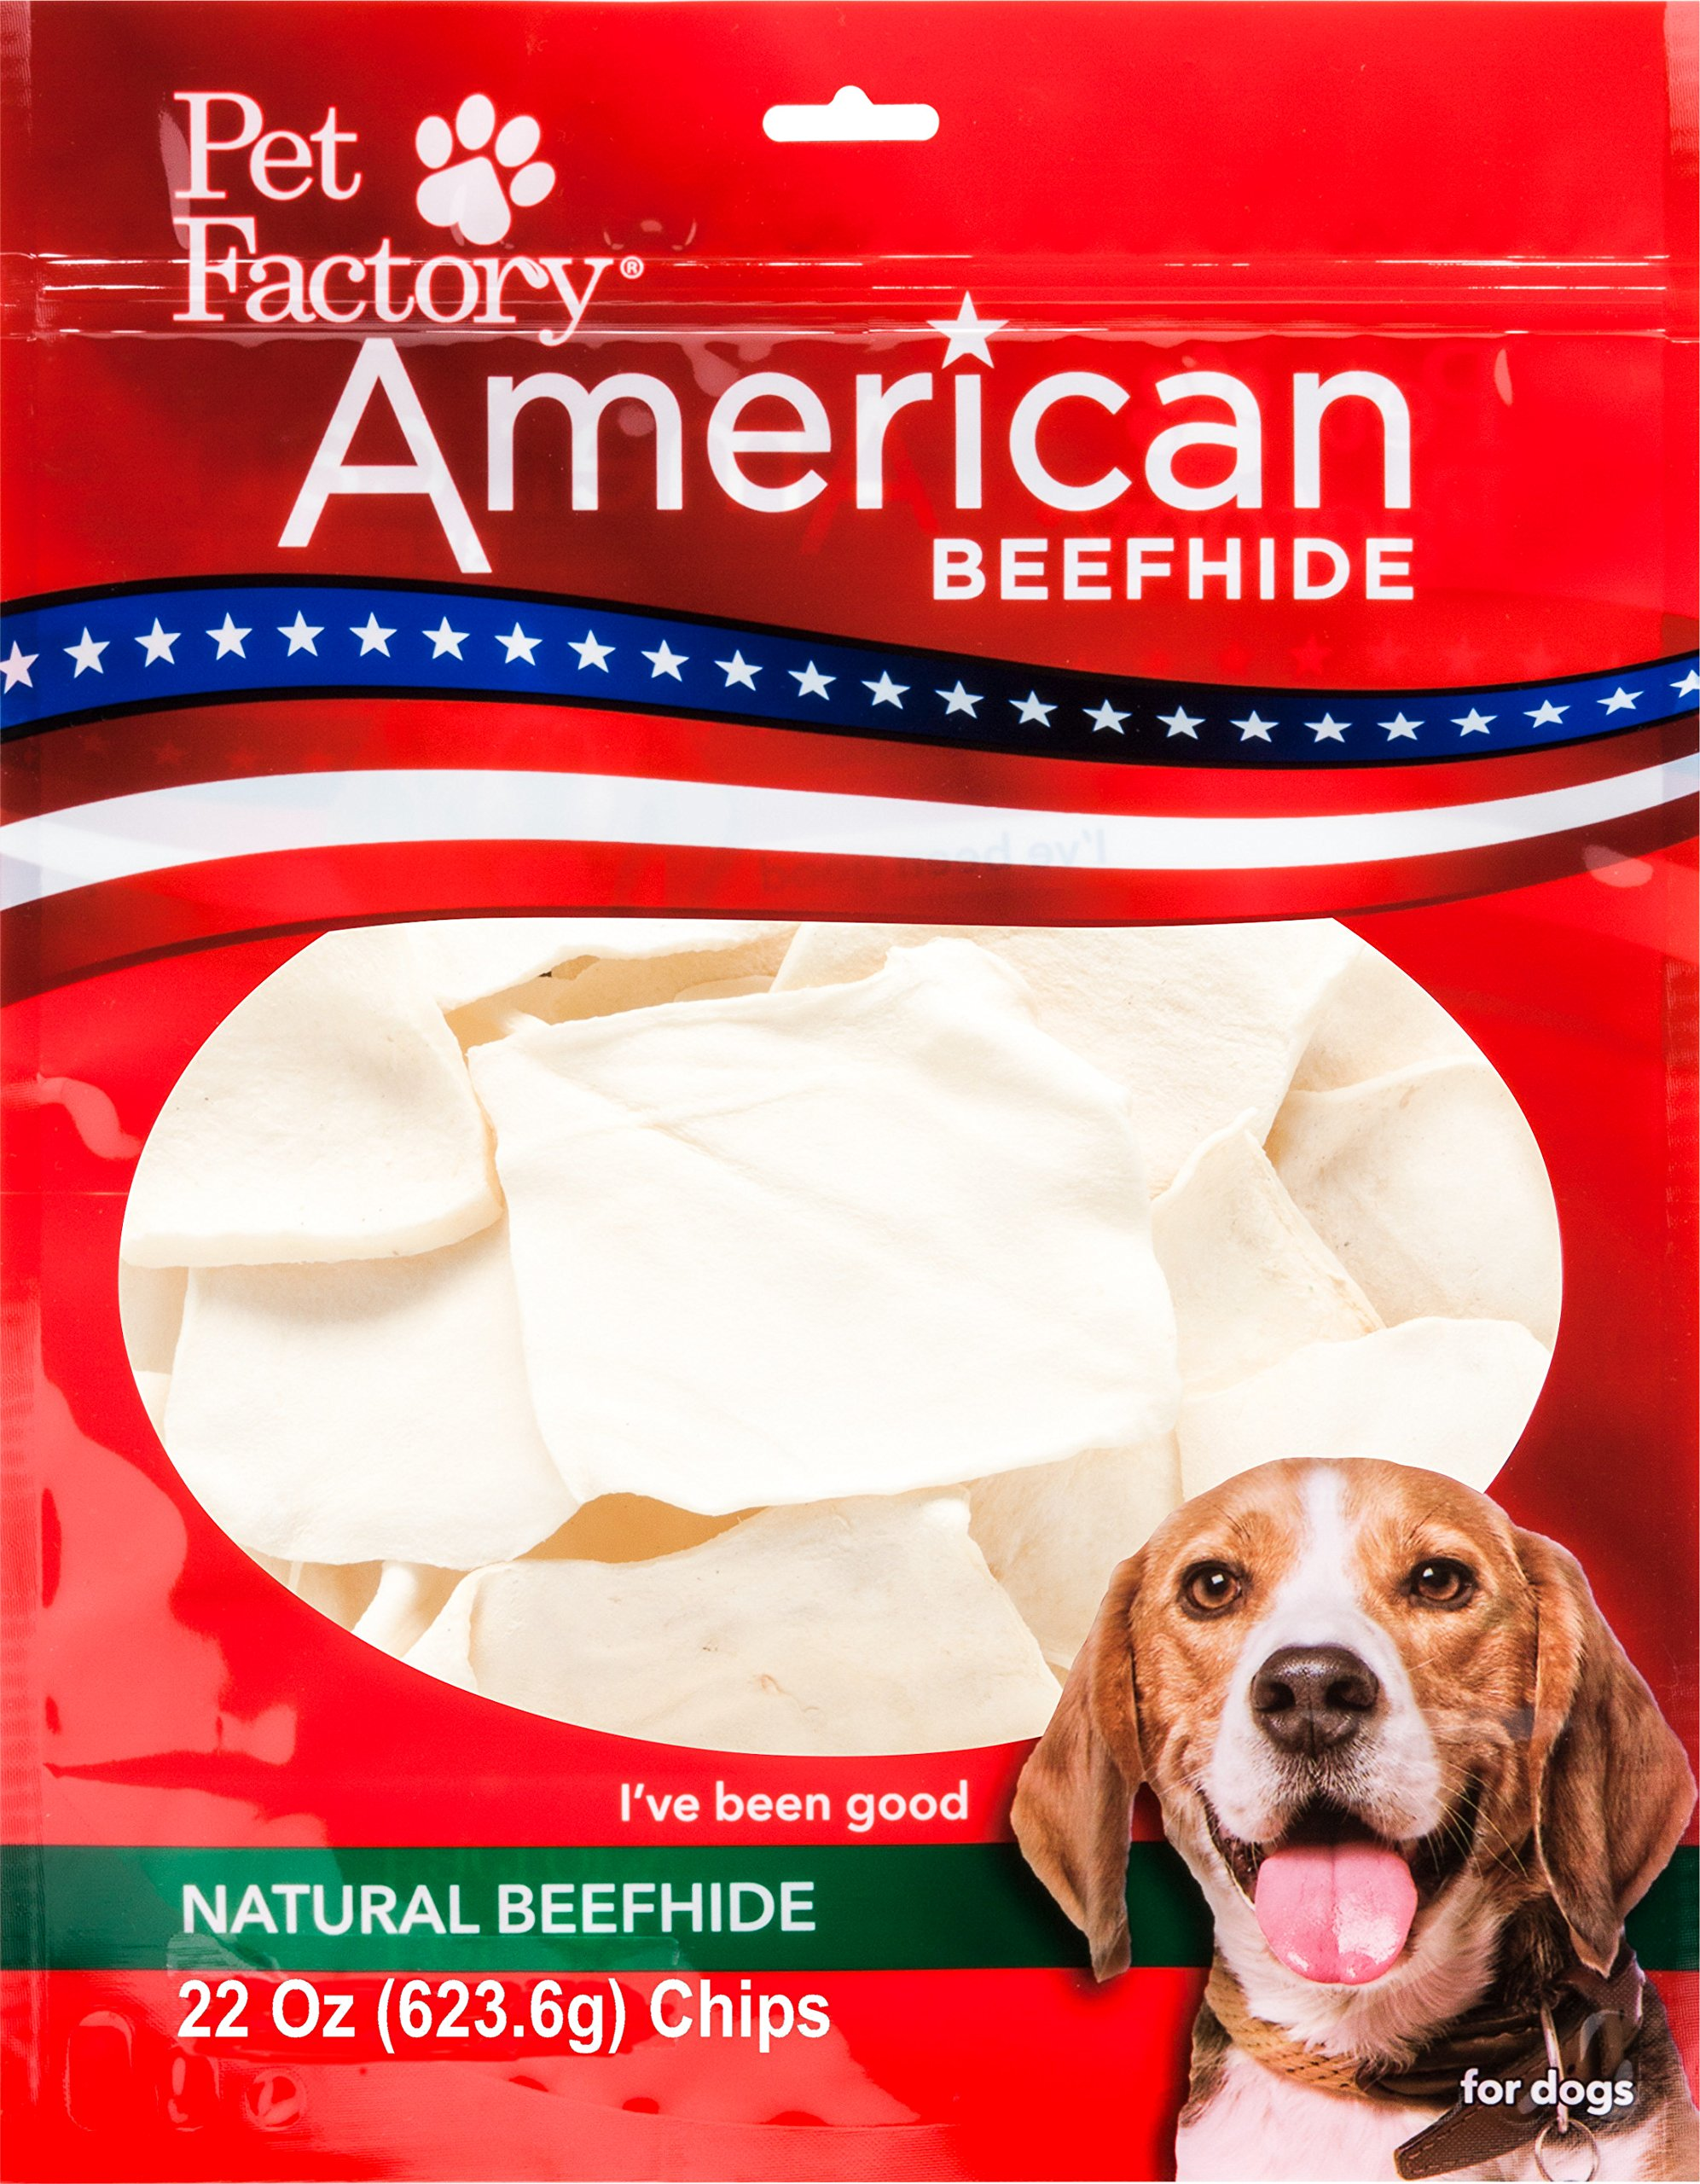 Pet Factory American Beefhide Chews 28322 Rawhide Natural Flavor Chips for Dogs. American Beefhide is a Great Natural Source for Protein and Assists in Dental Health. Large 22 Ounce Resealable Package